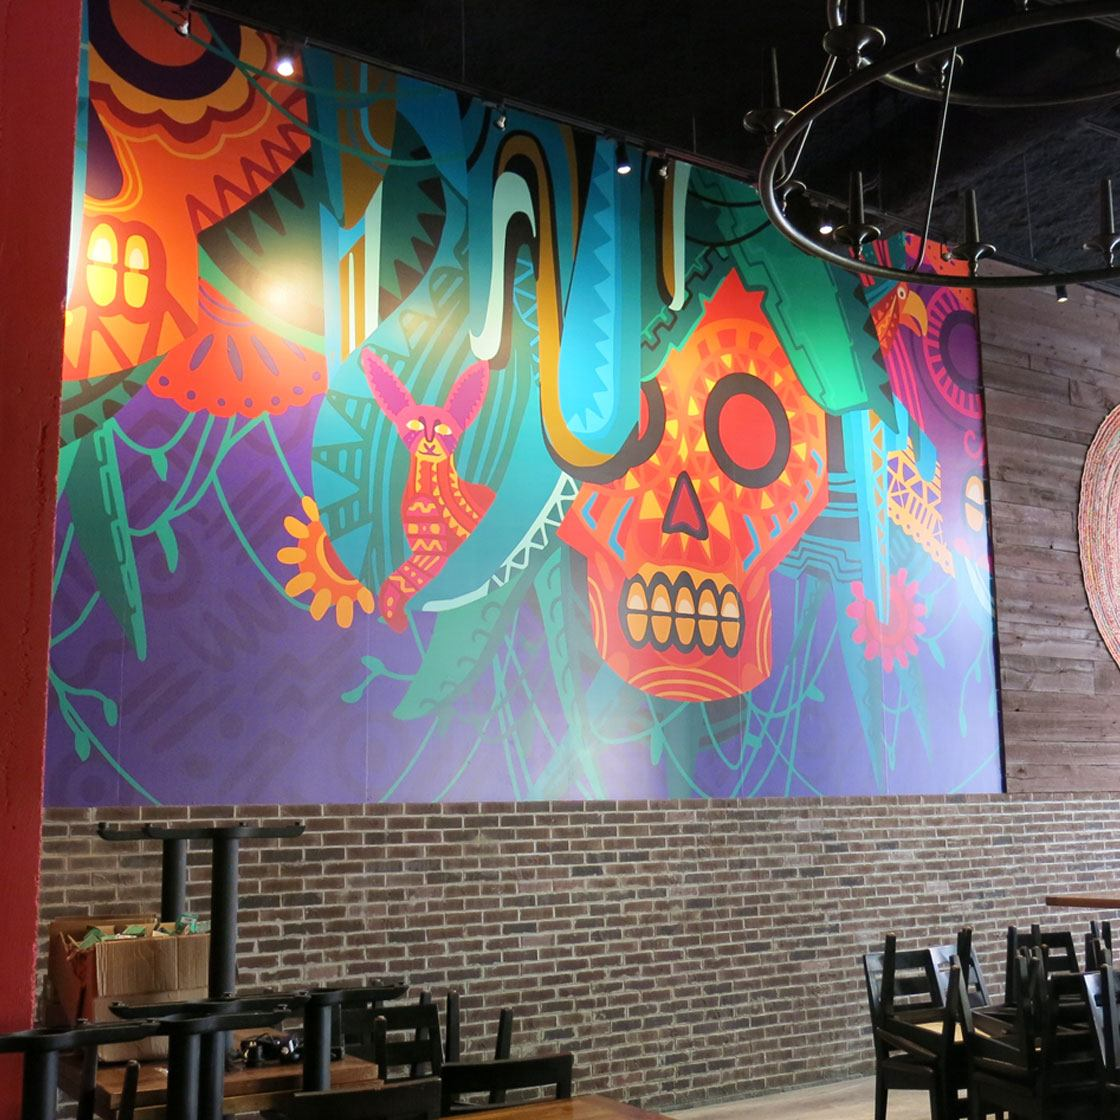 A colorful graphically illustrated mural inspired by Mexican skulls and iconography decorating the seating area of a restaurant